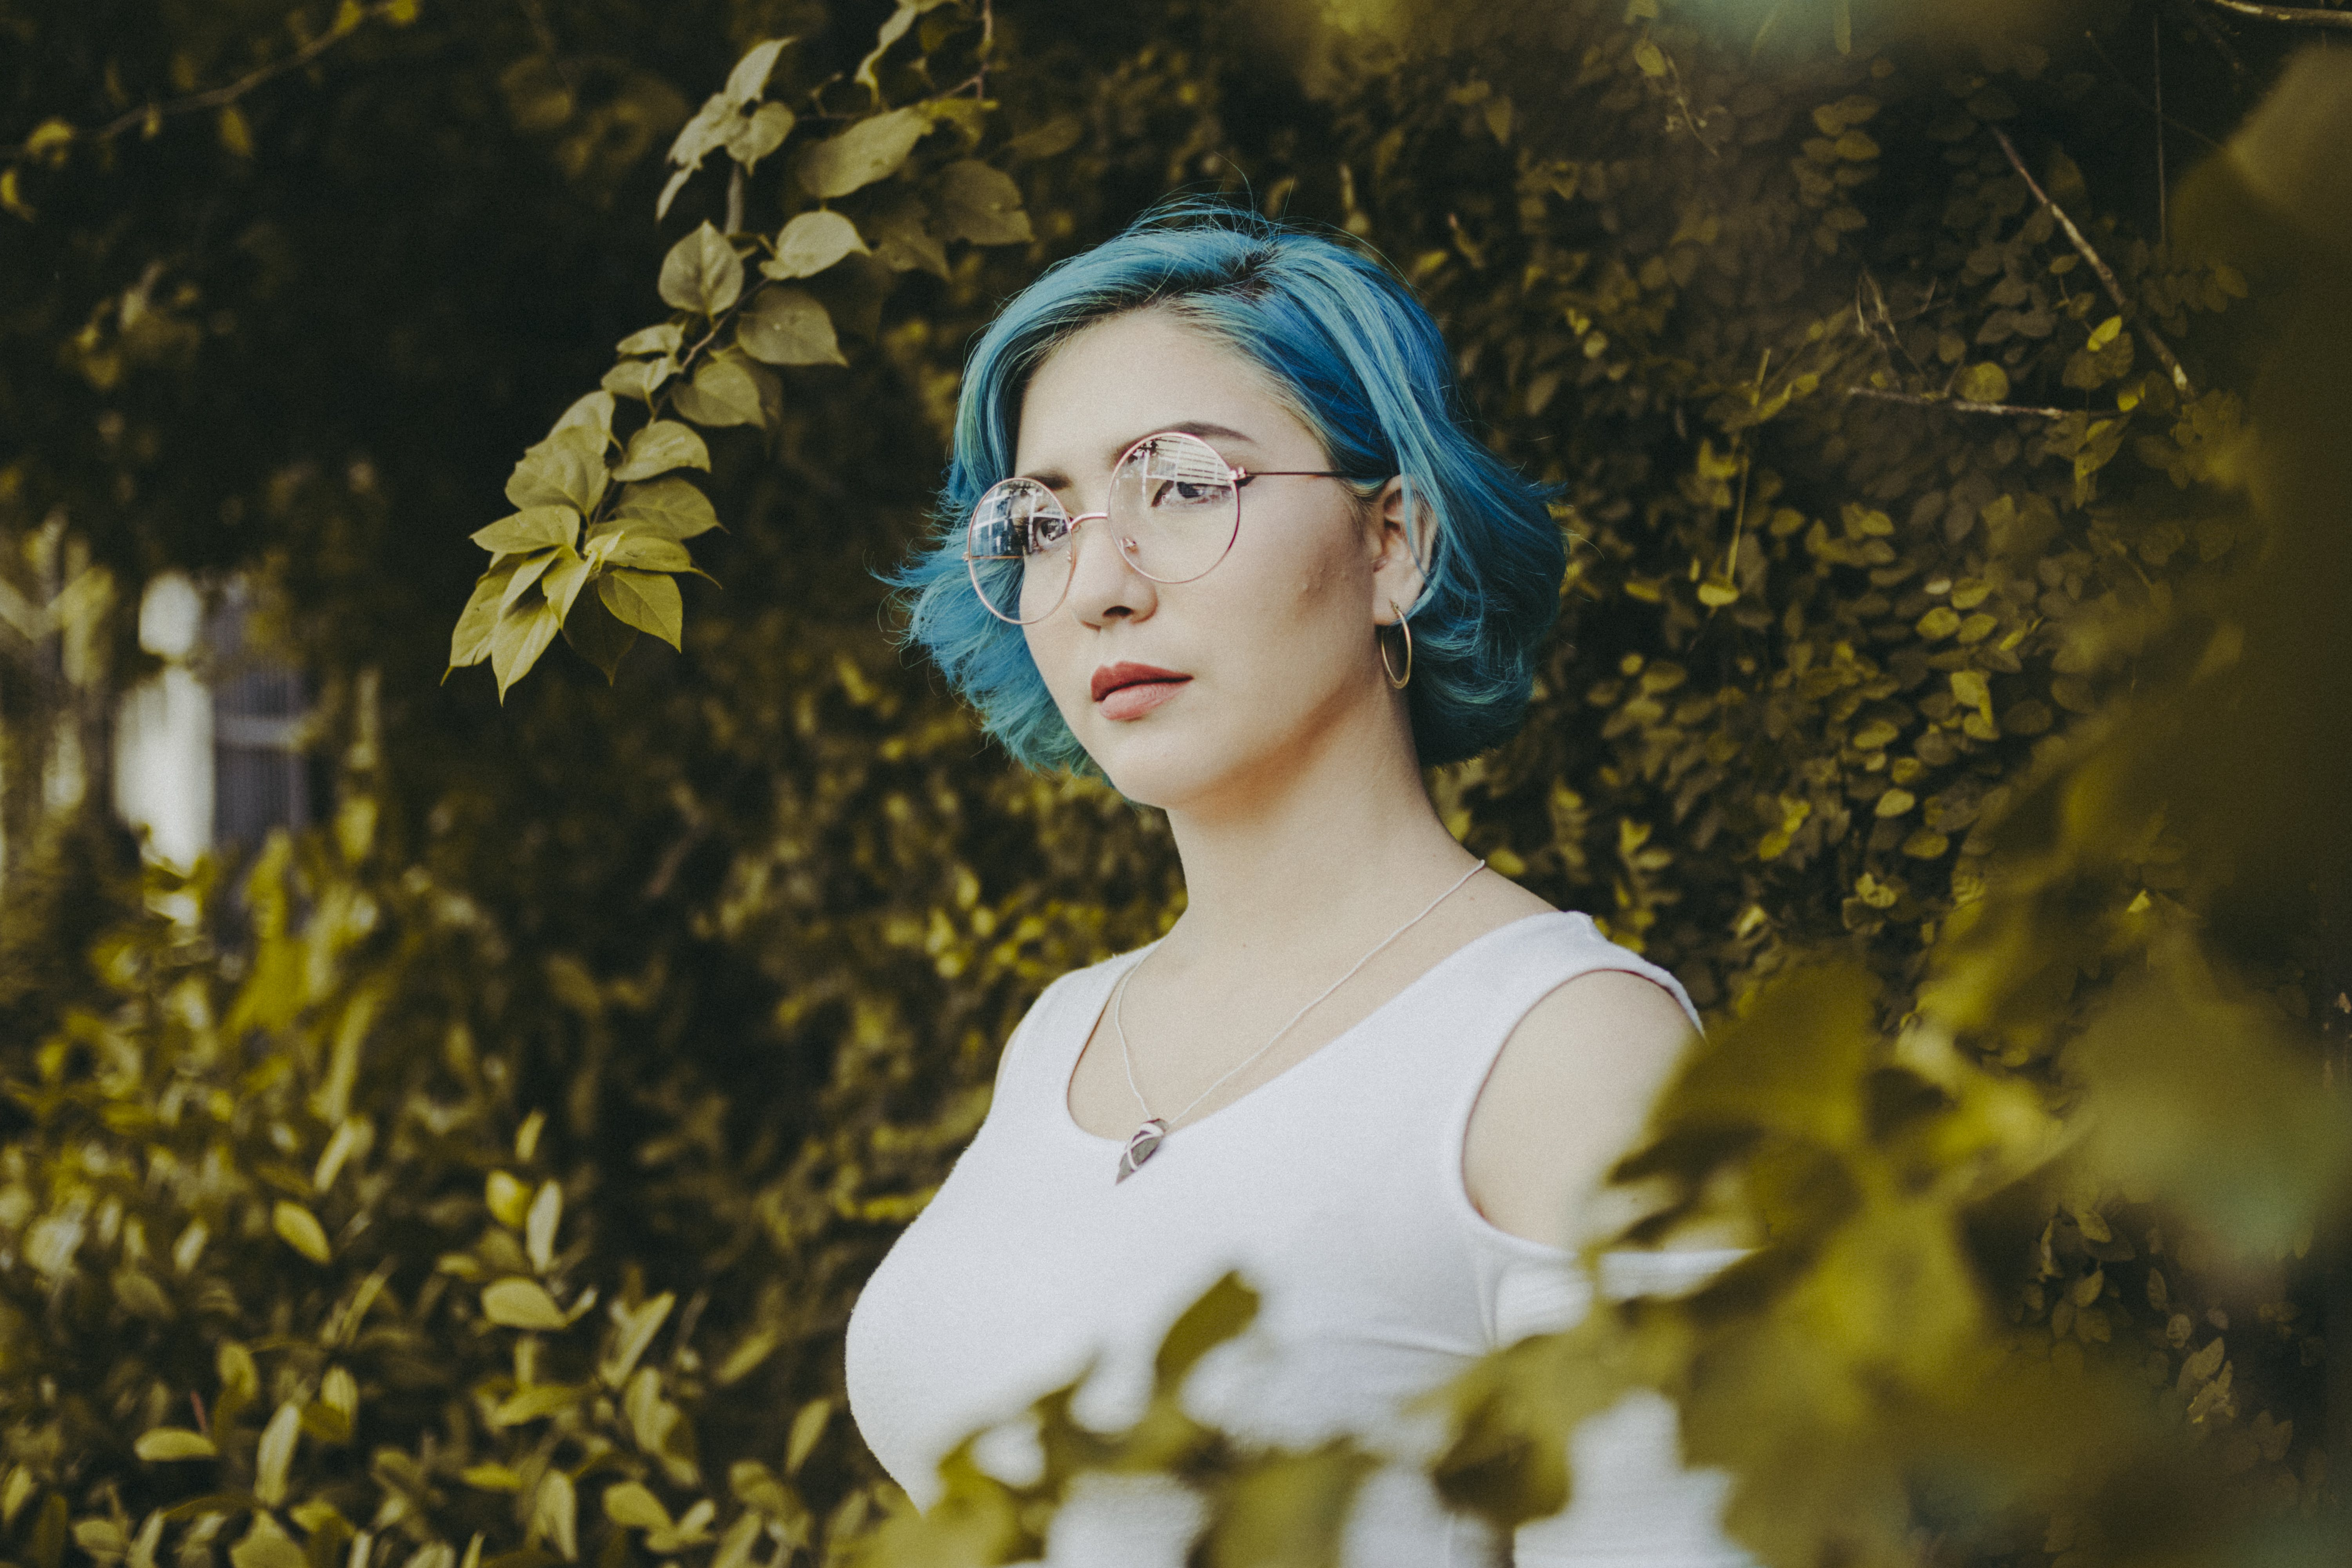 Blue-haired Woman Surrounded by Green-leafed Plants